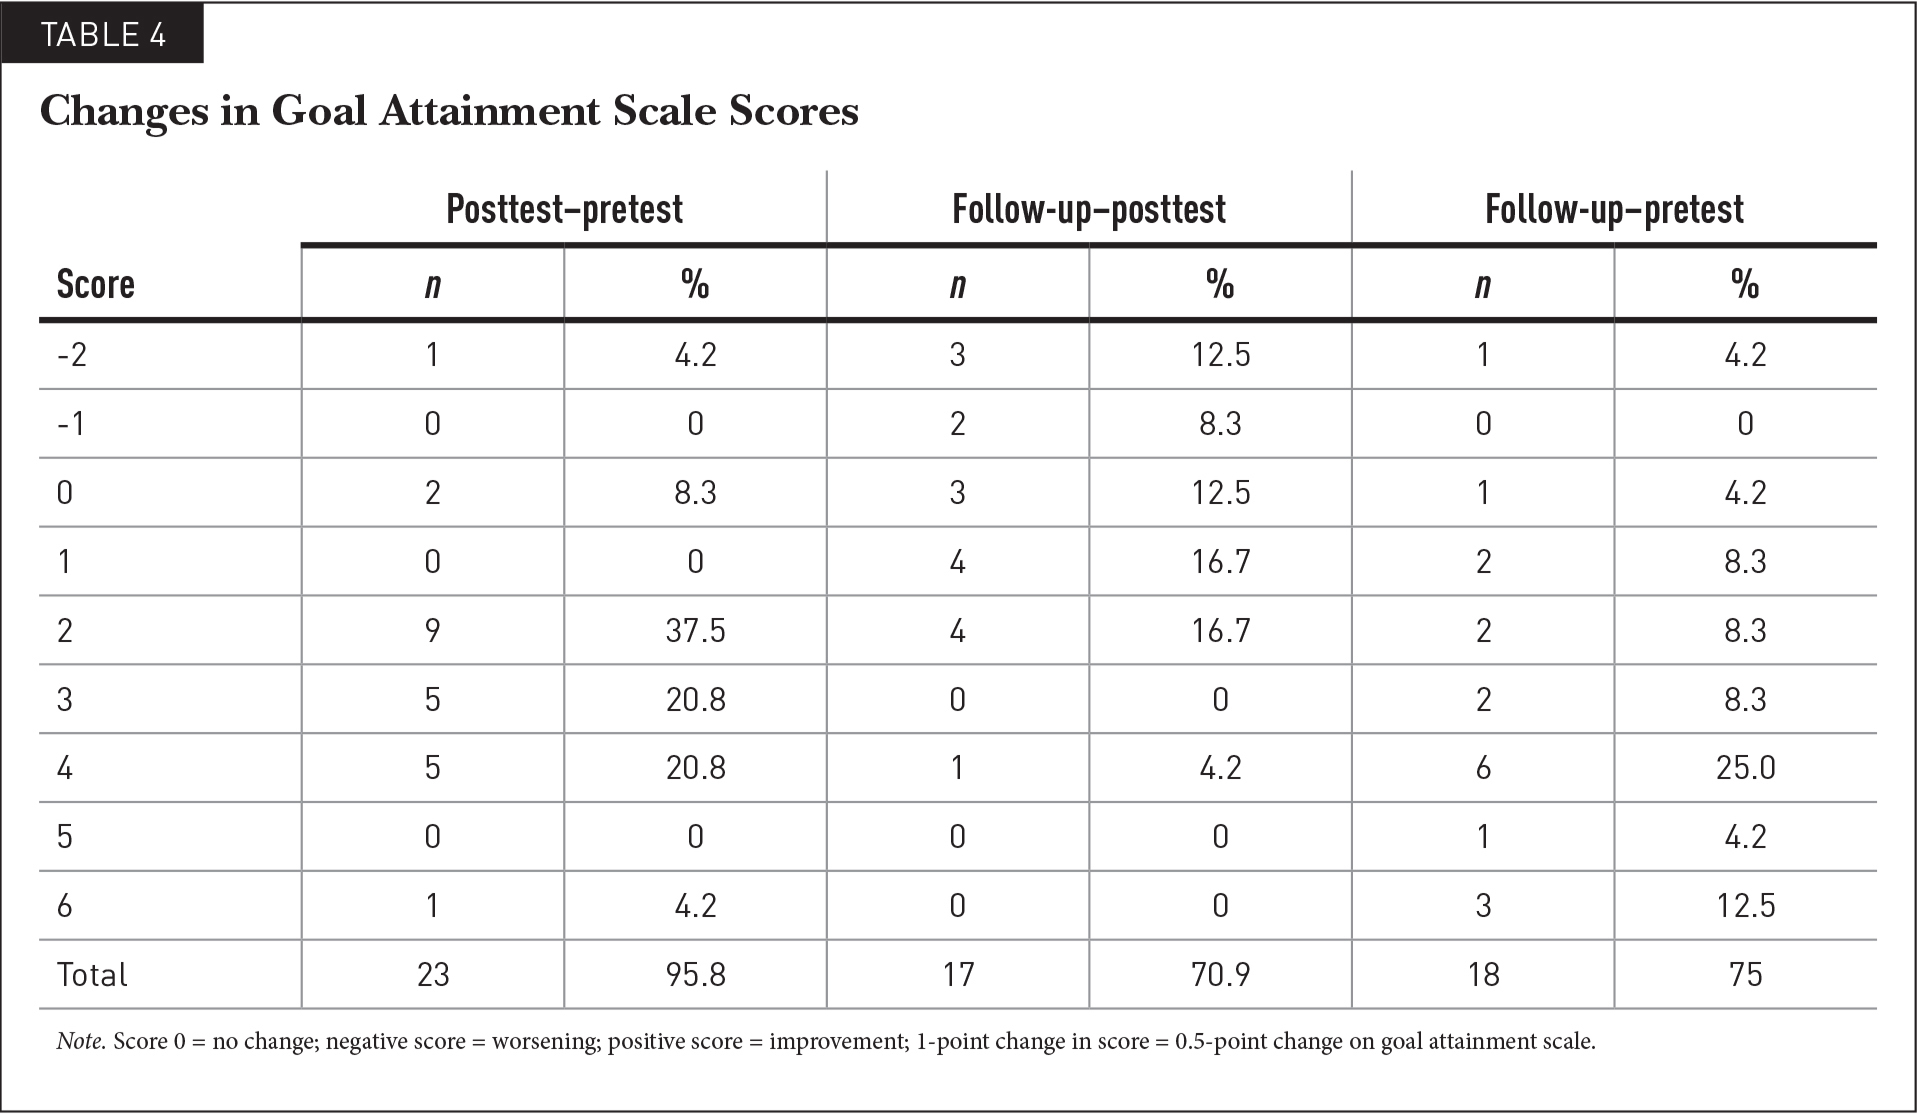 Changes in Goal Attainment Scale Scores